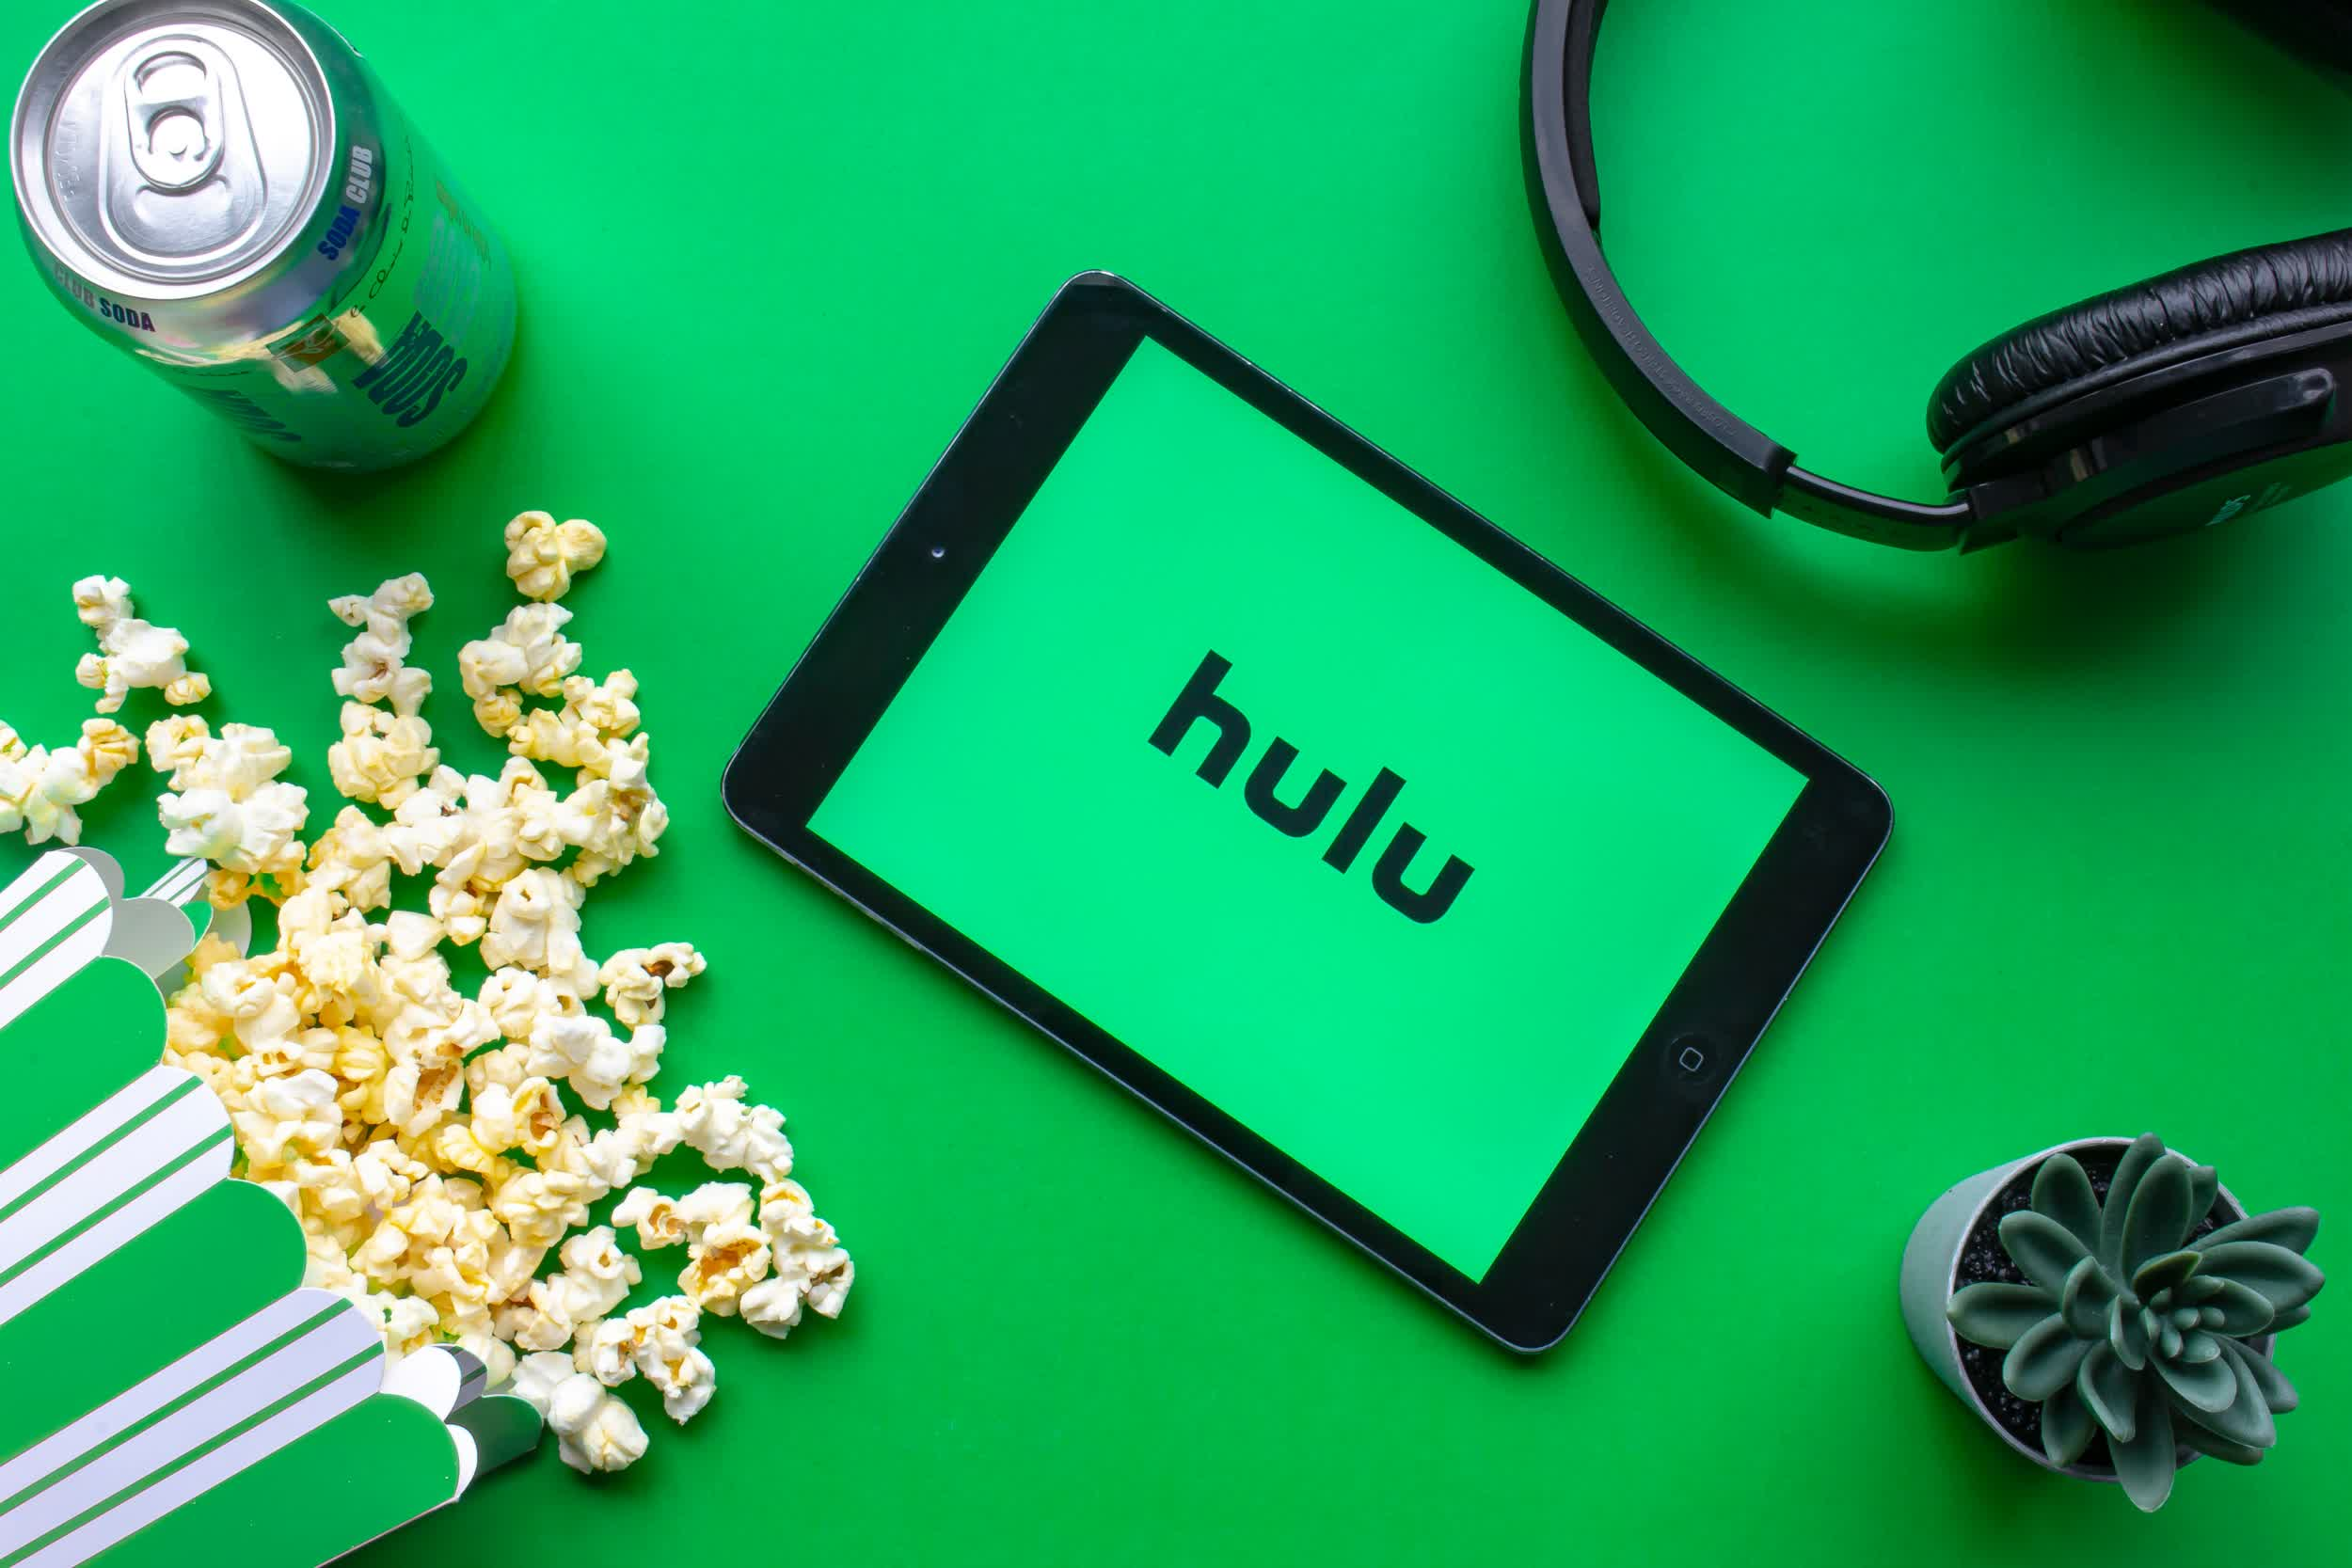 Hulu subscription drops to just $1.99 per month for 12 months with this Black Friday deal